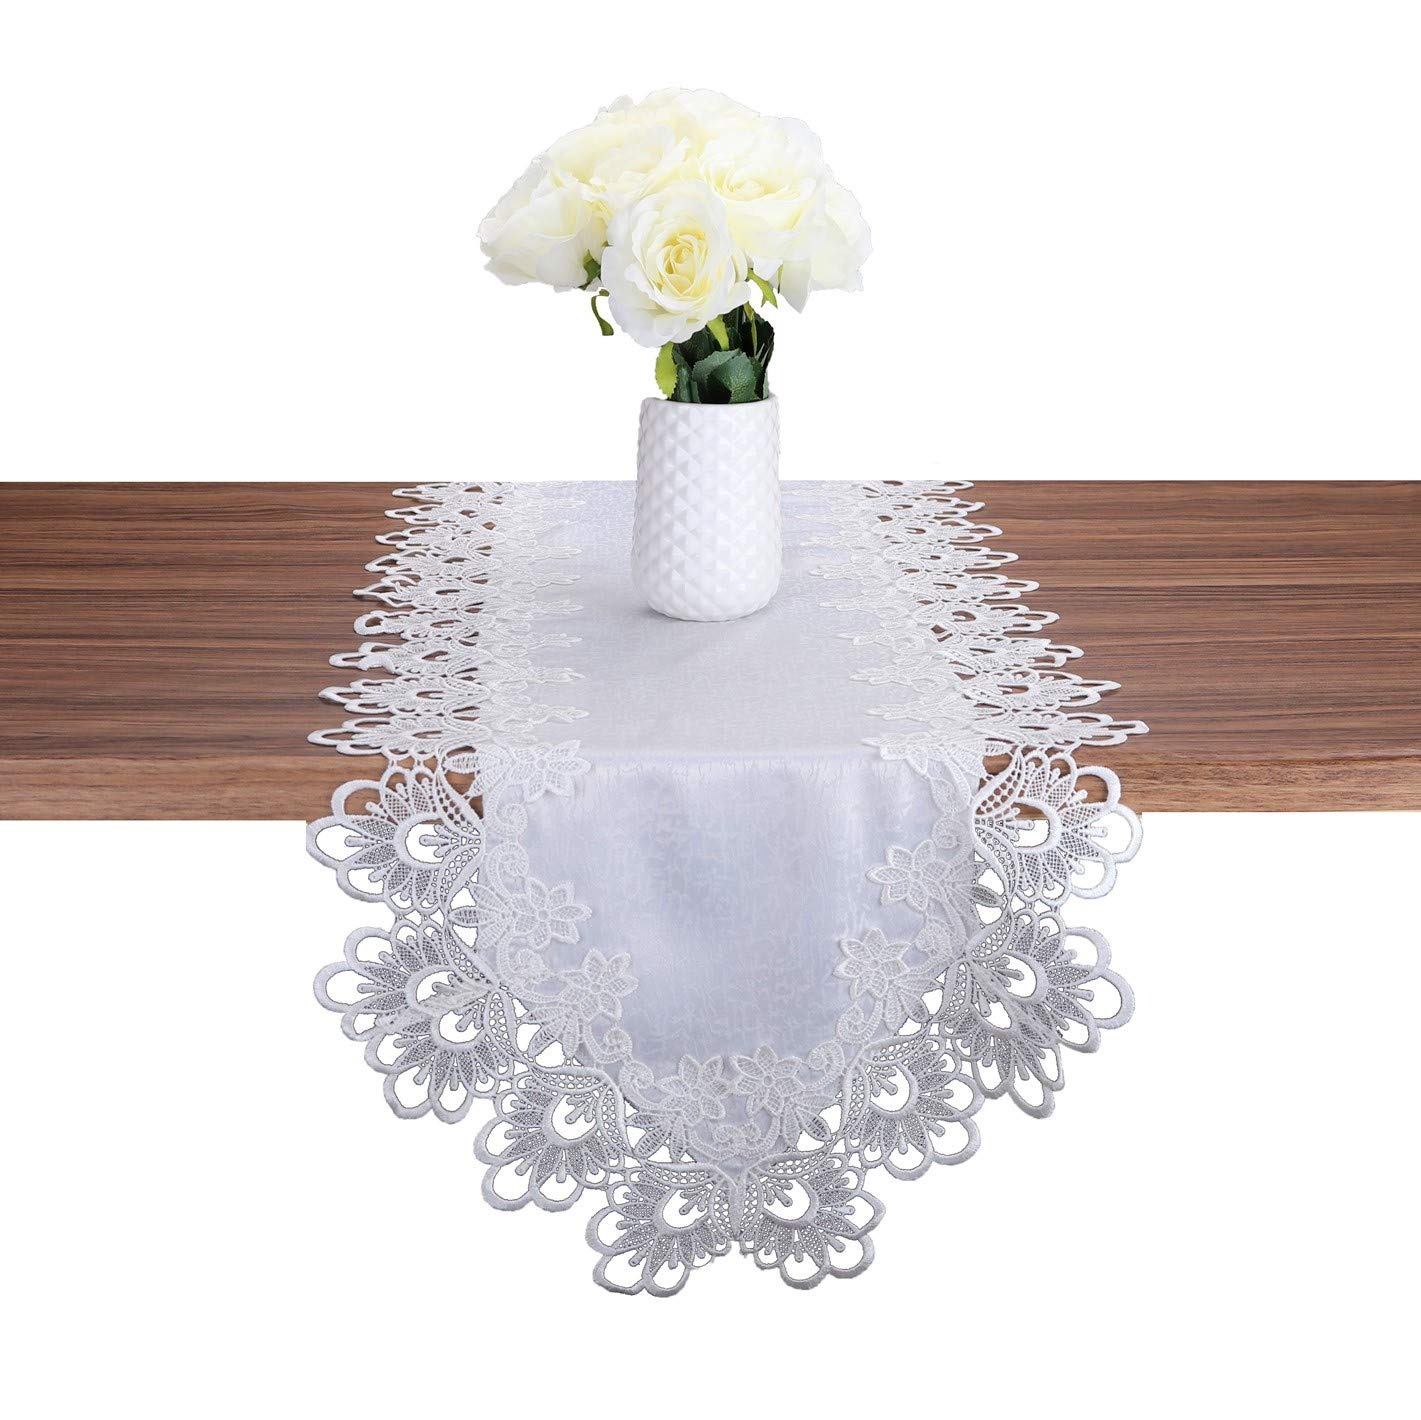 (16x87 inch (40x220cm), White) - TaiXiuHome White European Style Minimalist Floral Embroidery Lace Table Runner Hollow Top Decoration Rectangle approx 16x87 inch (40x220cm) 16x87 inch (40x220cm) ホワイト B01MTYO0Y2